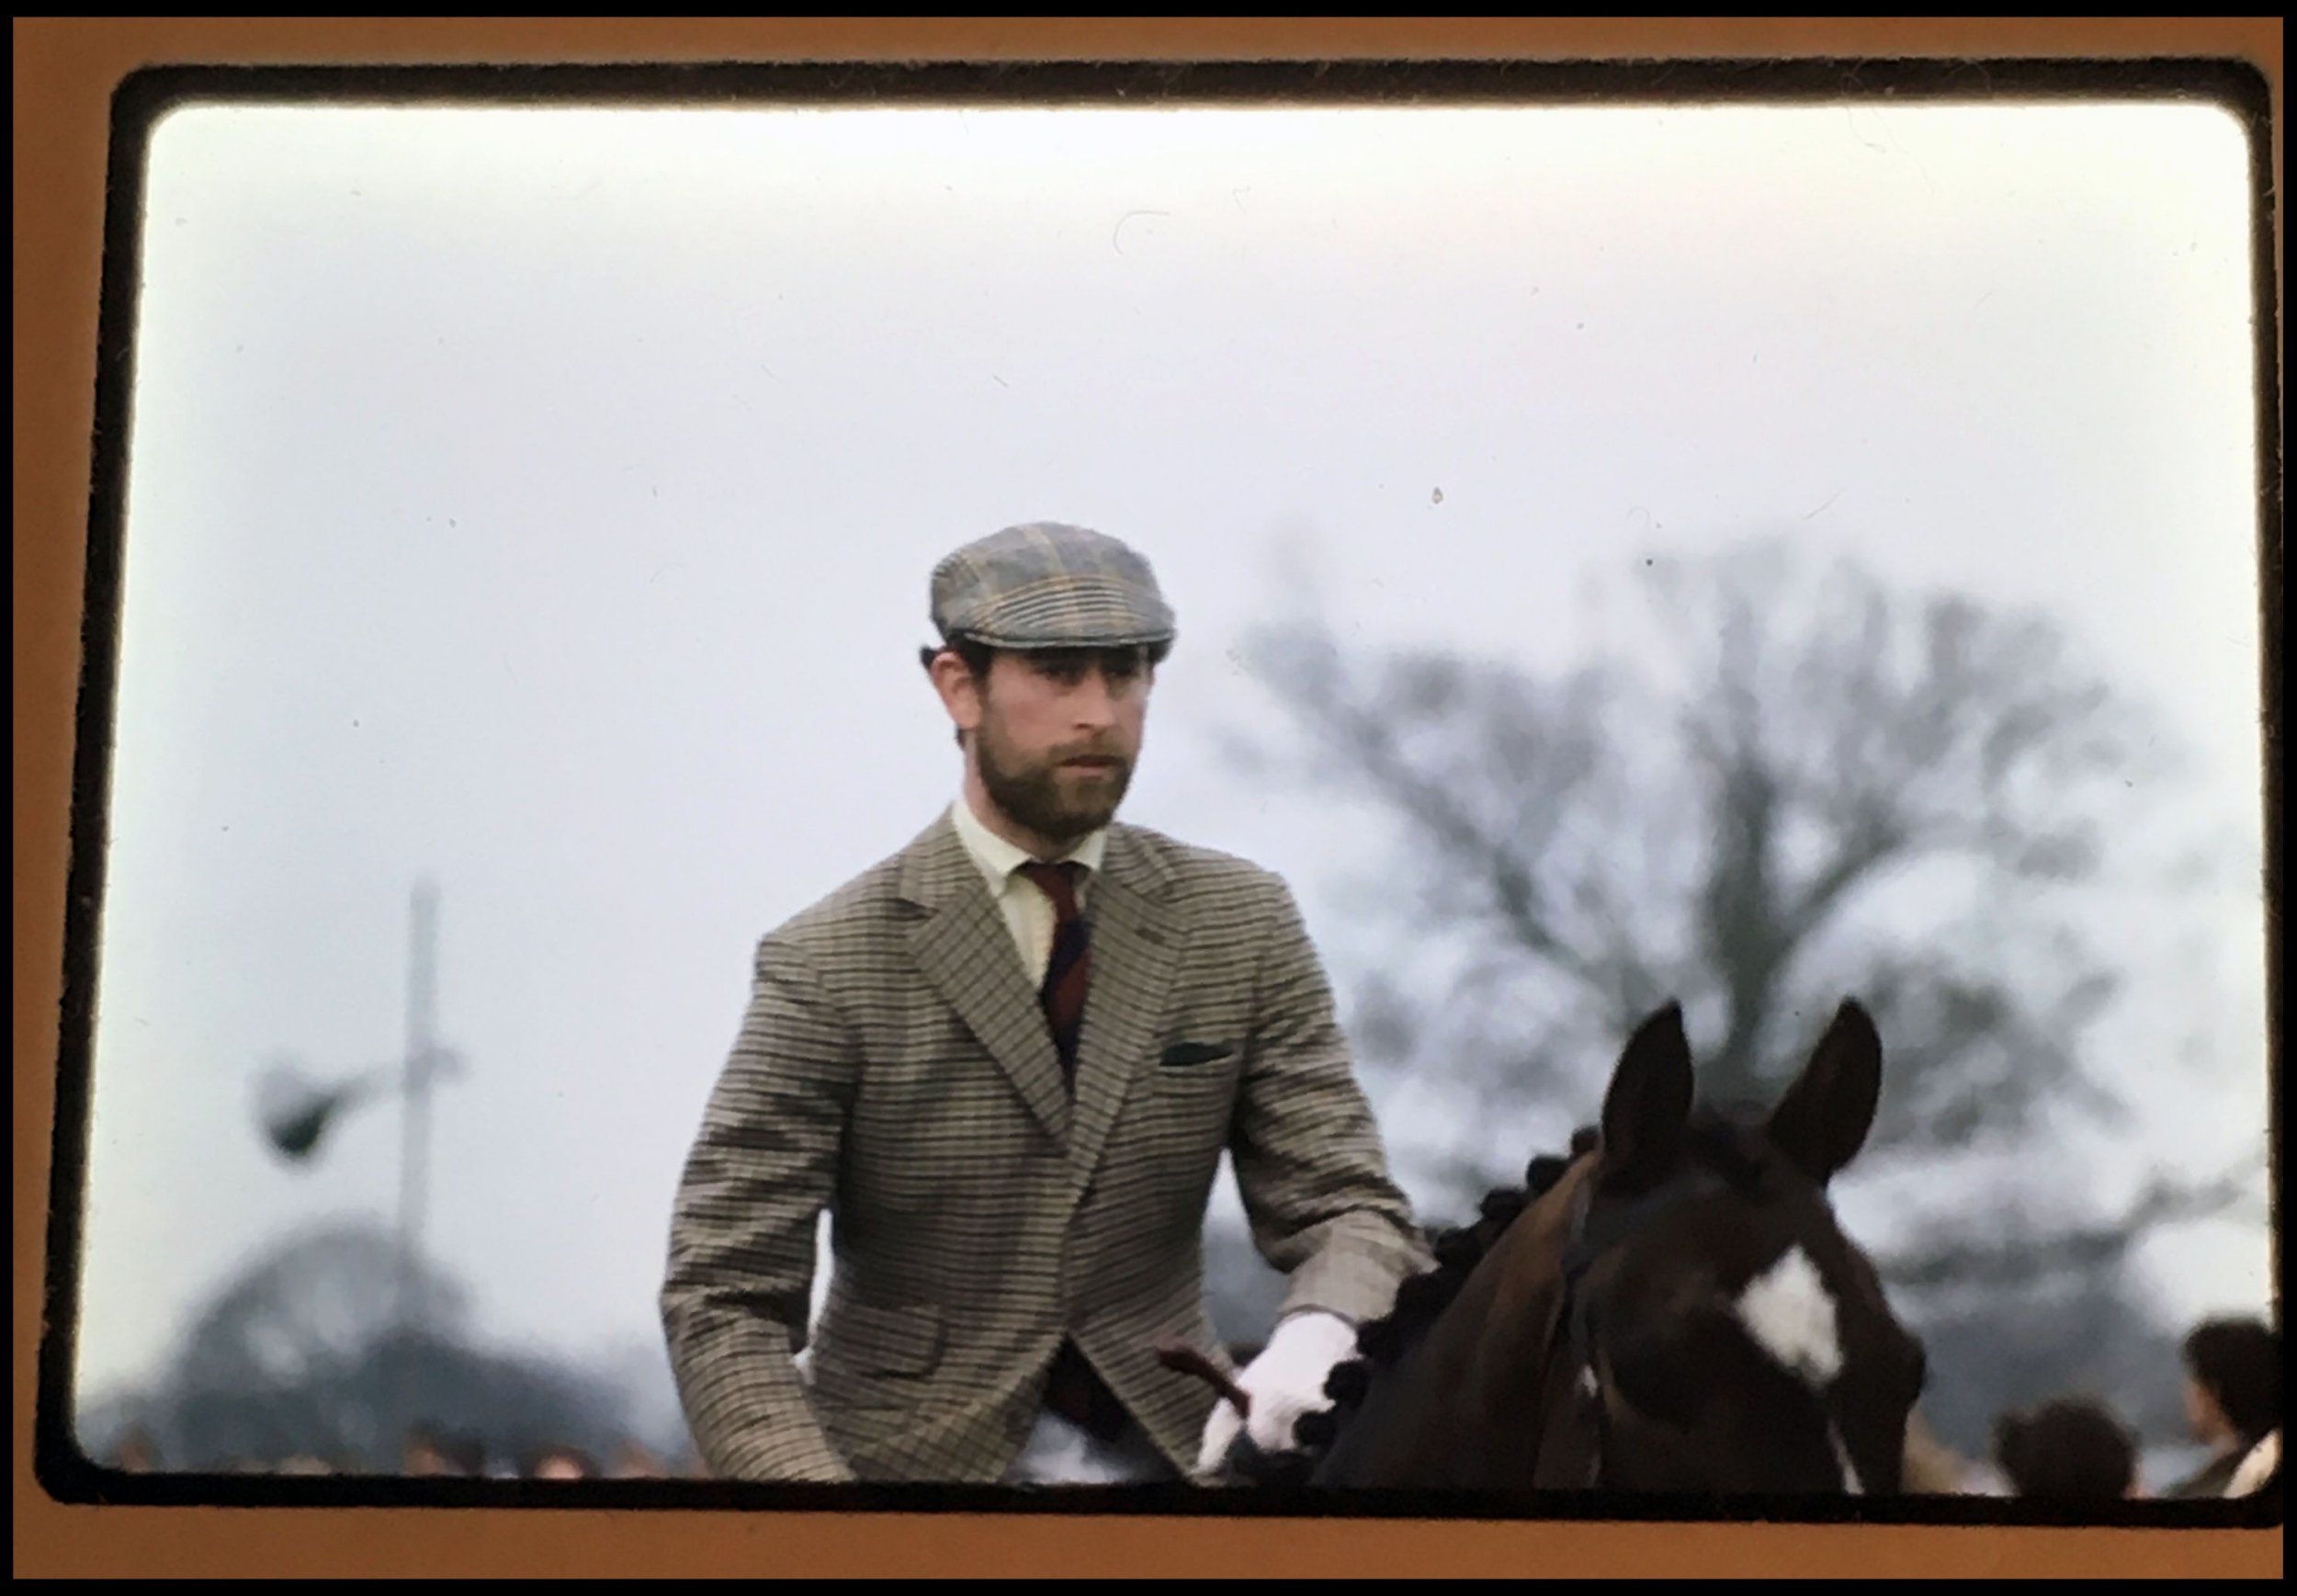 BNPS.co.uk (01202 558833) Pic: JohnScott/JudyAppelbee/BNPS A bearded Prince Charles at another horse event. A remarkable archive of over 4,000 photos of the Royals taken over four decades by a trusted photographer has emerged for sale for ?10,000. The photos include iconic snaps of Prince Charles and Princess Diana on honeymoon as well as intimate shots of the Queen and other prominent Royals relaxing away from the public gaze. The fascinating images were taken by Royal photographer John Scott (Col Vassa Voynovich) who was given unprecedented access to the Royal family from the 1950s to the 1980s, following them around the world on formal engagements. Among the incredible unseen slides and candid photos that capture the royals at work and play are images of Charles dancing with scantily clad women at a carnival in Brazil and meeting the cast of MASH and the Queen in a relaxed group with Lord Louis Mountbatten at a horse show. The archive is being sold by Scott's assistant Judy Appelbee, who he left the collection to when he died in the 1980s, through Penzance-based auctioneers David Lay.